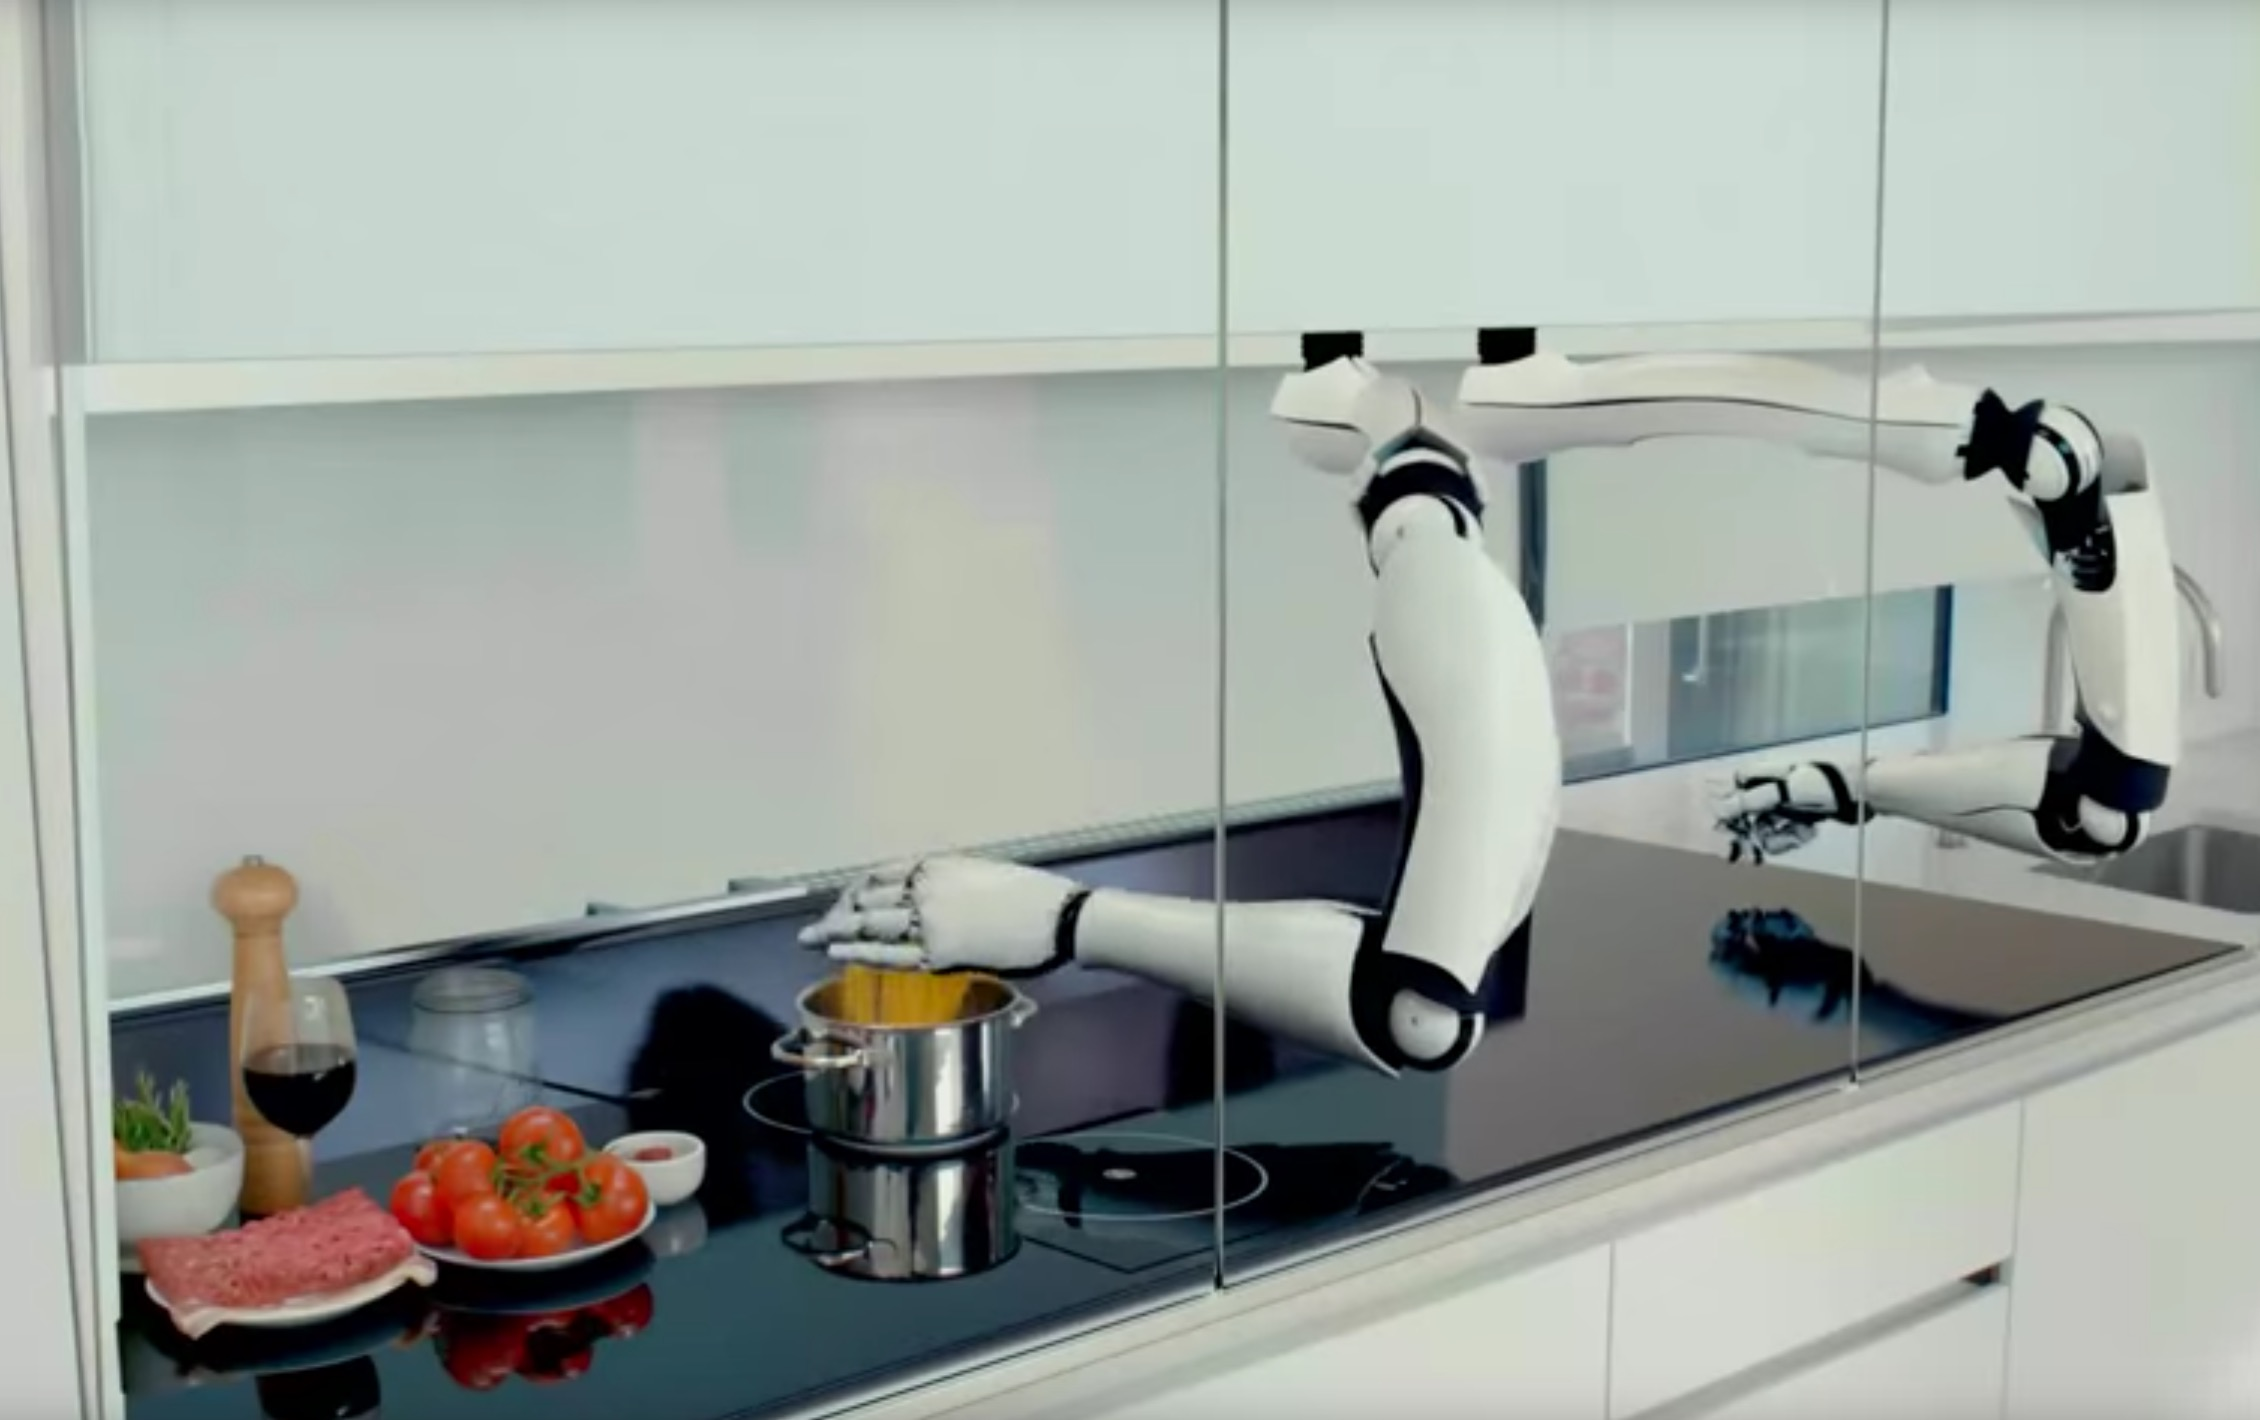 This Robot Suggests 3D Printing Automation Applications?